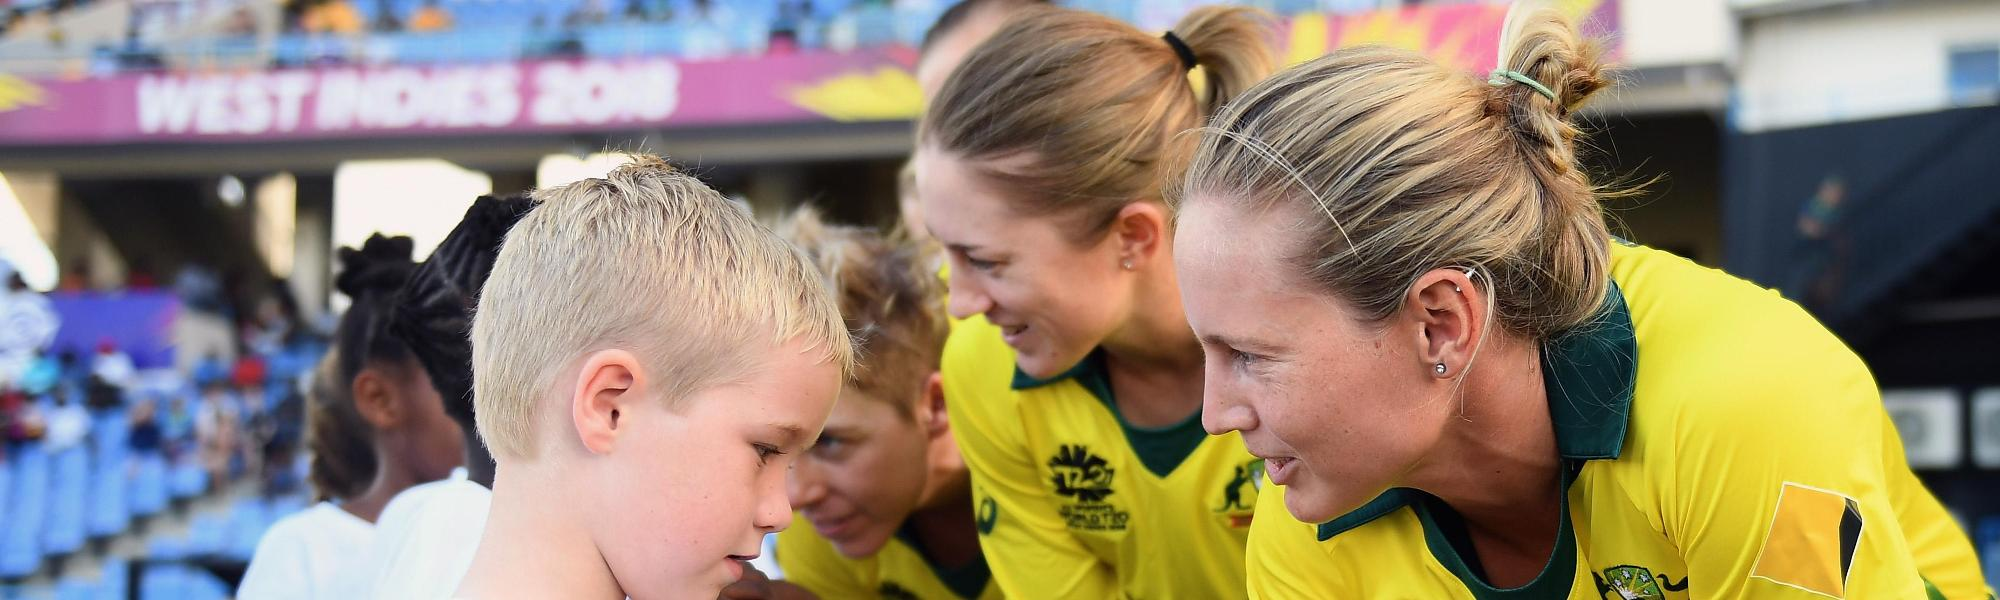 Meg Lanning of Australia shakes hands with a young mascot during the ICC Women's World T20 2018 Semi-Final match between Windies and Australia at Sir Viv Richards Cricket Ground on November 22, 2018 in Antigua, Antigua and Barbuda.